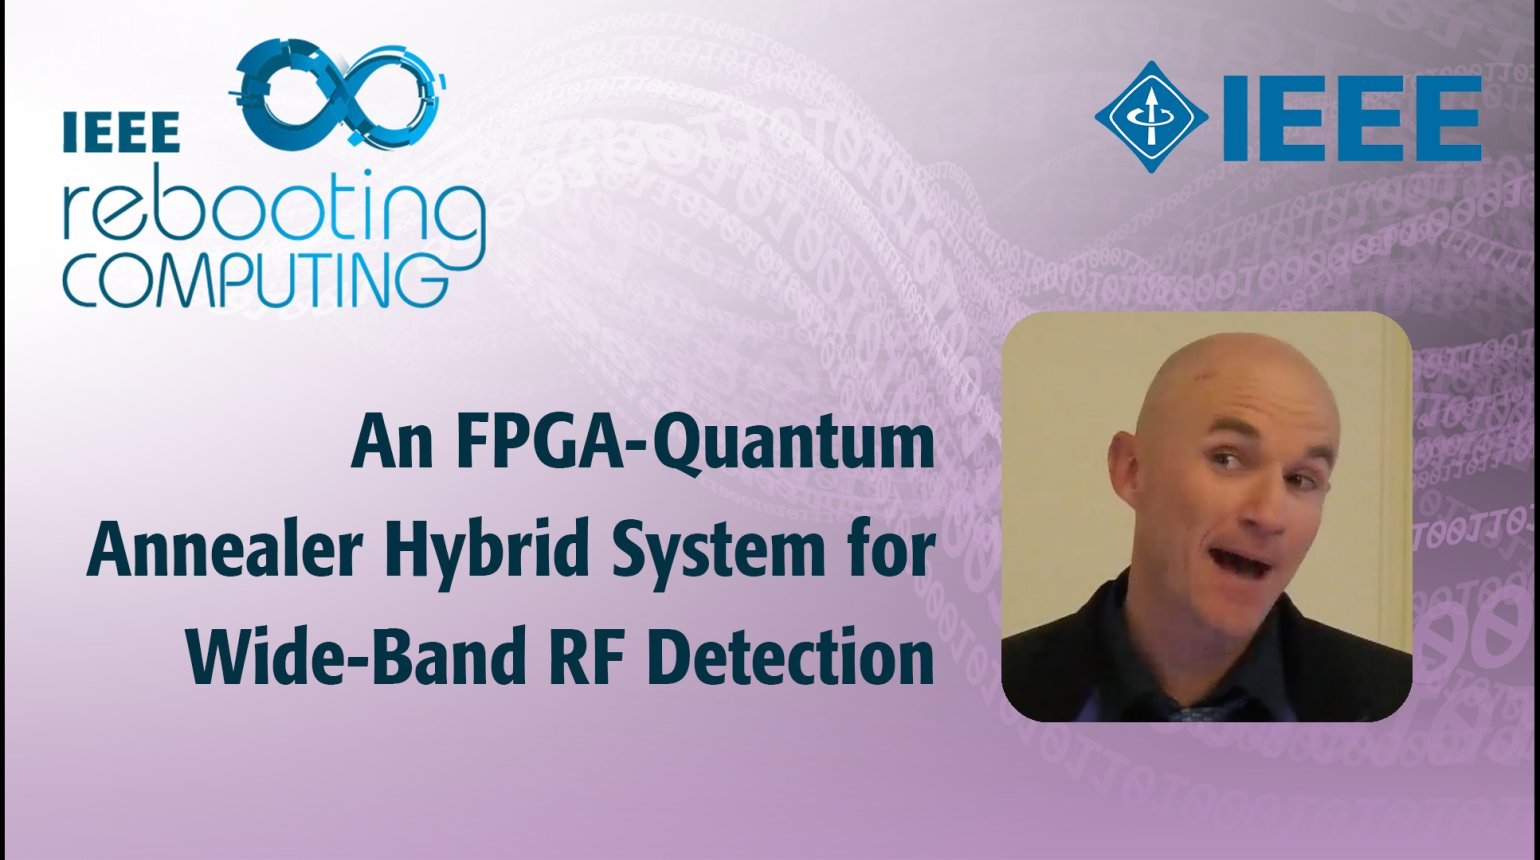 An FPGA-Quantum Annealer Hybrid System for Wide-Band RF Detection - IEEE Rebooting Computing 2017